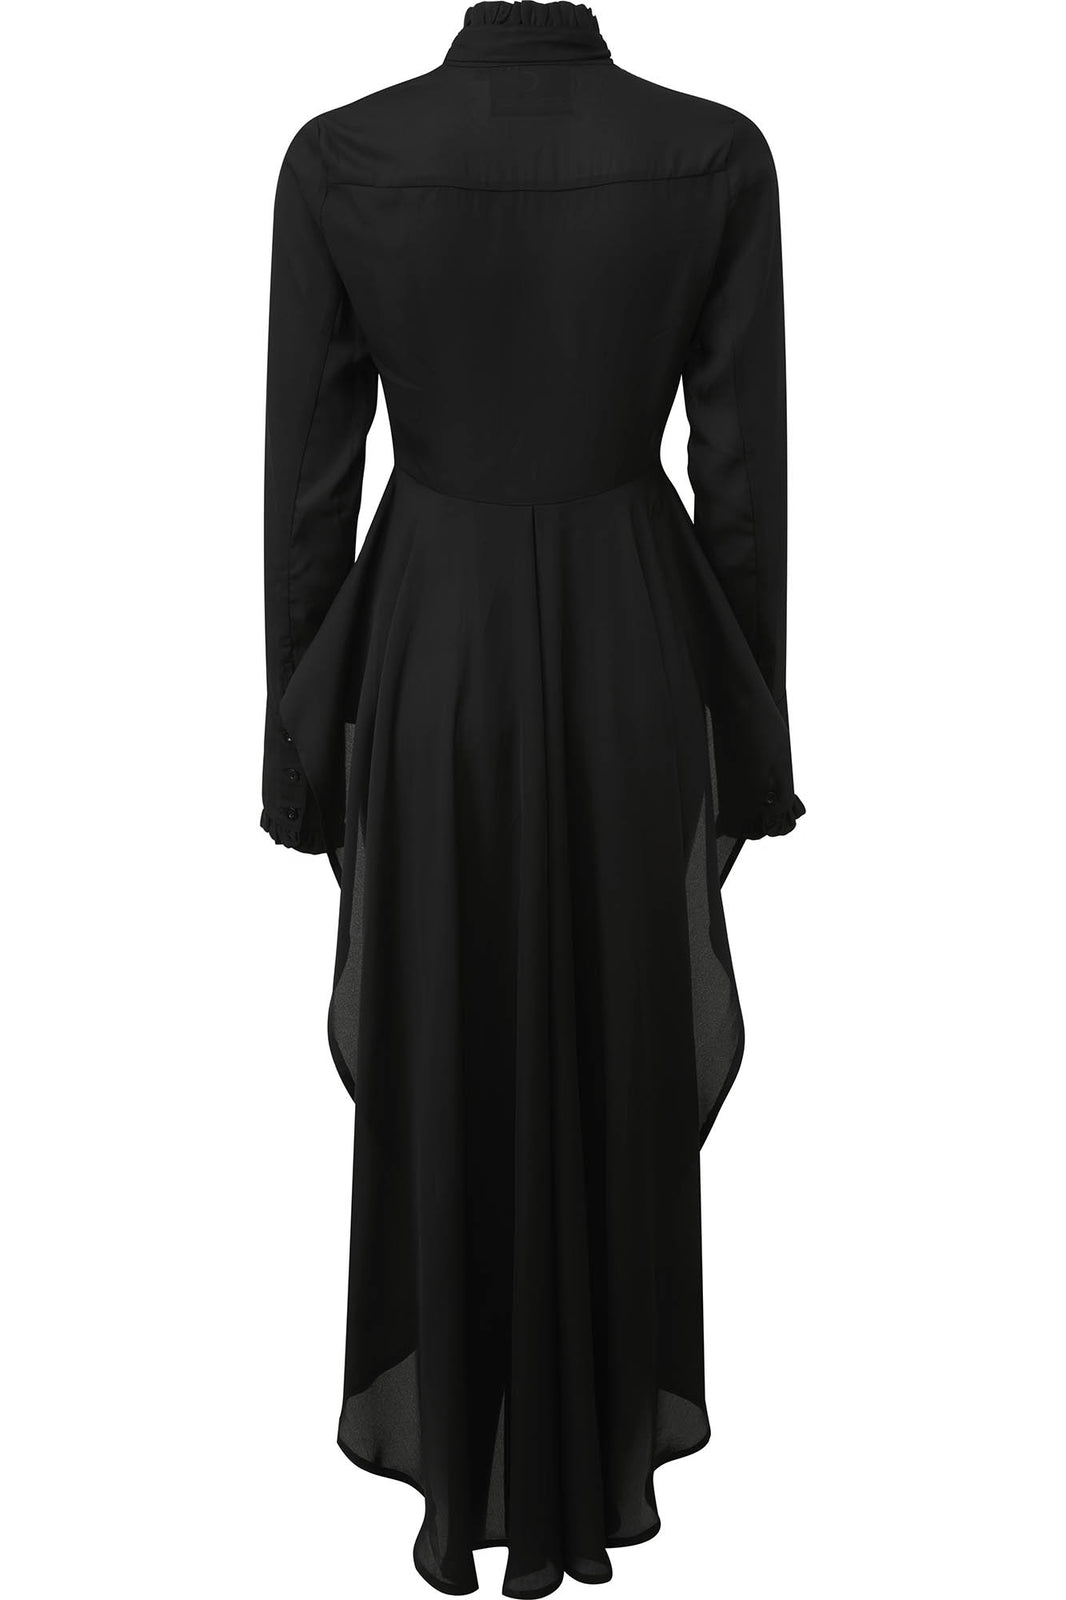 Sorrows Maxi Shirt